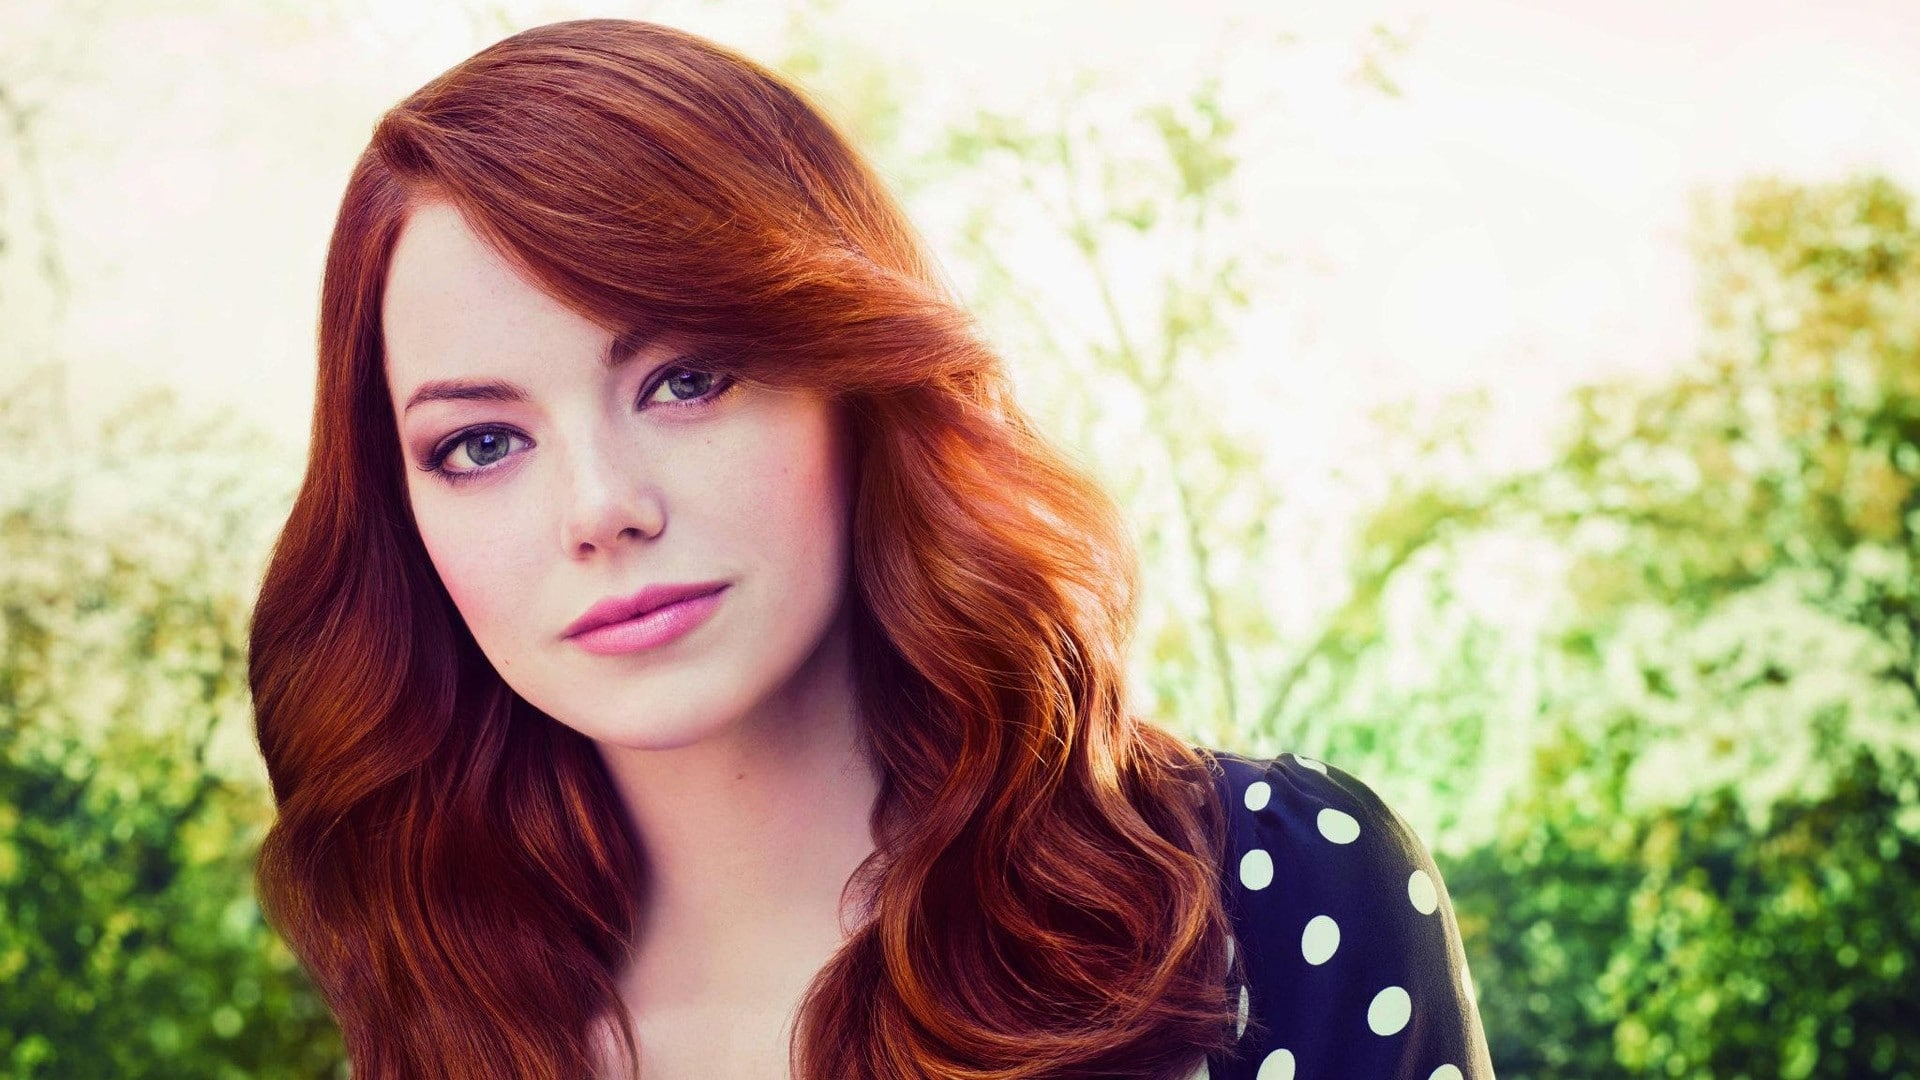 Emma, Emma, or Emma? |... Emma Stone Net Worth